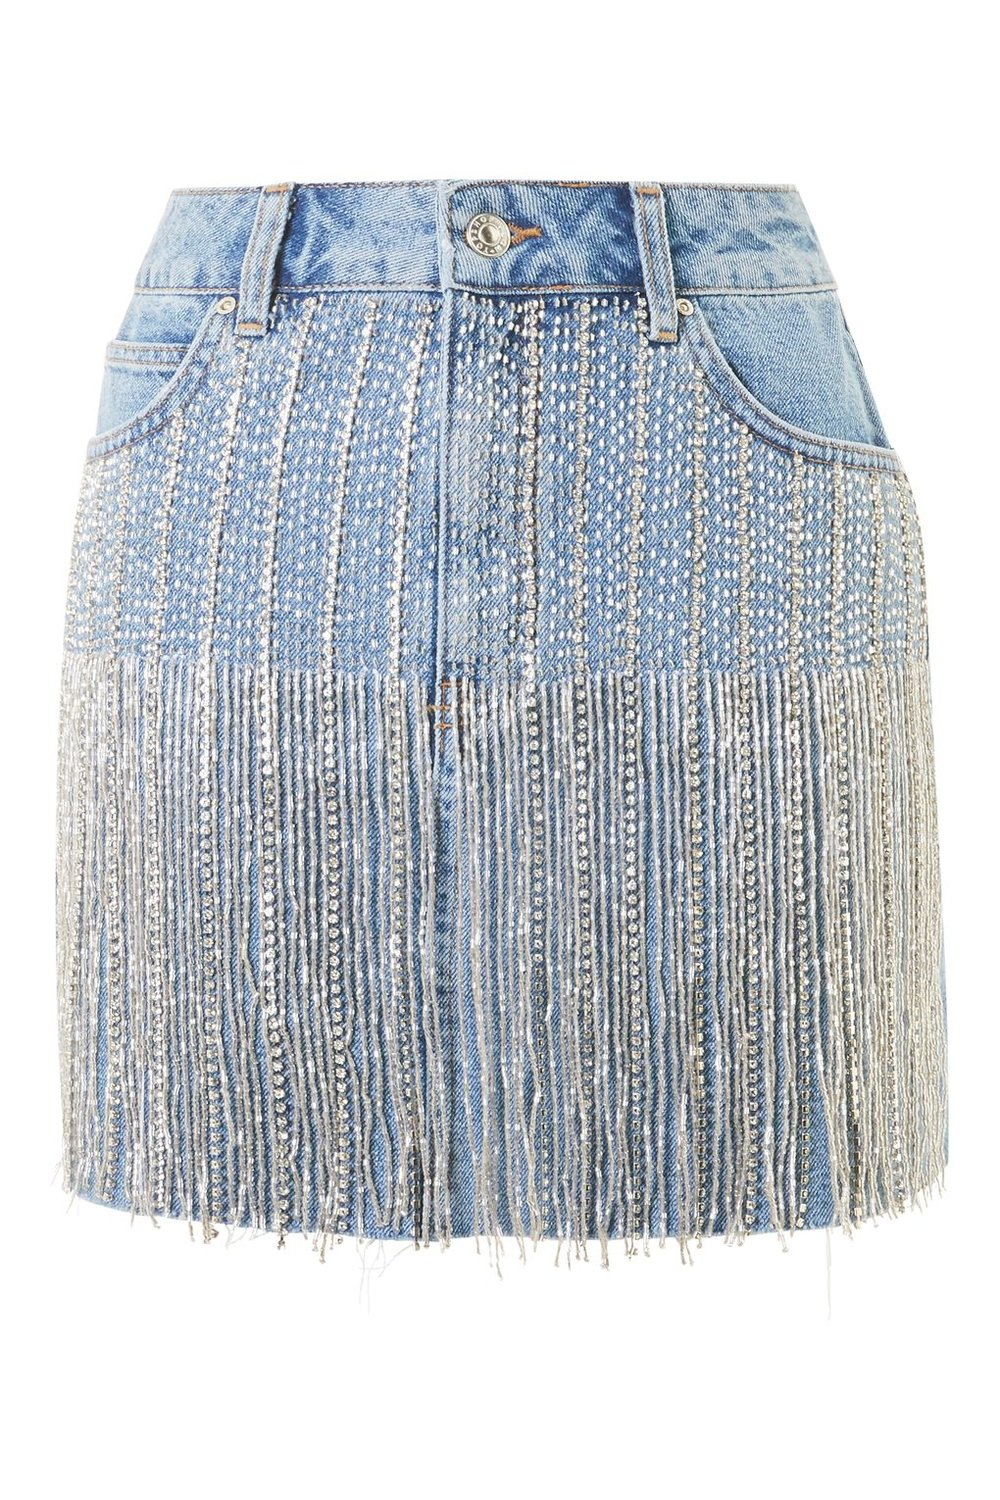 dazzle fringe denim skirt - Topshop £70